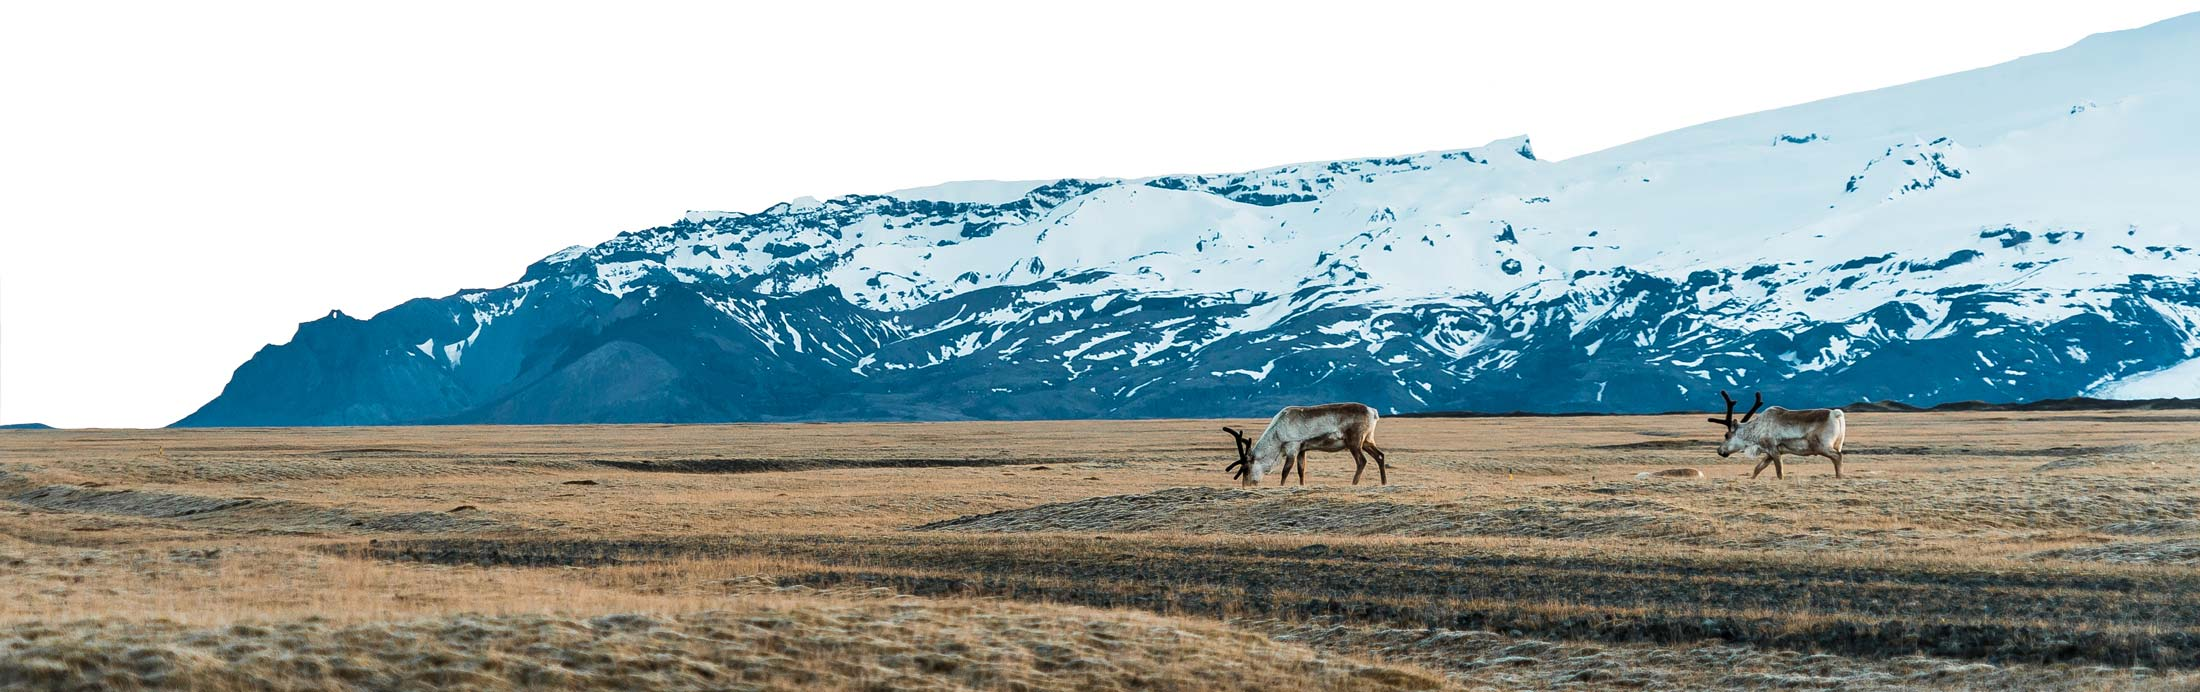 Reindeer on Iceland, available in Iceland Sneak Peek collection